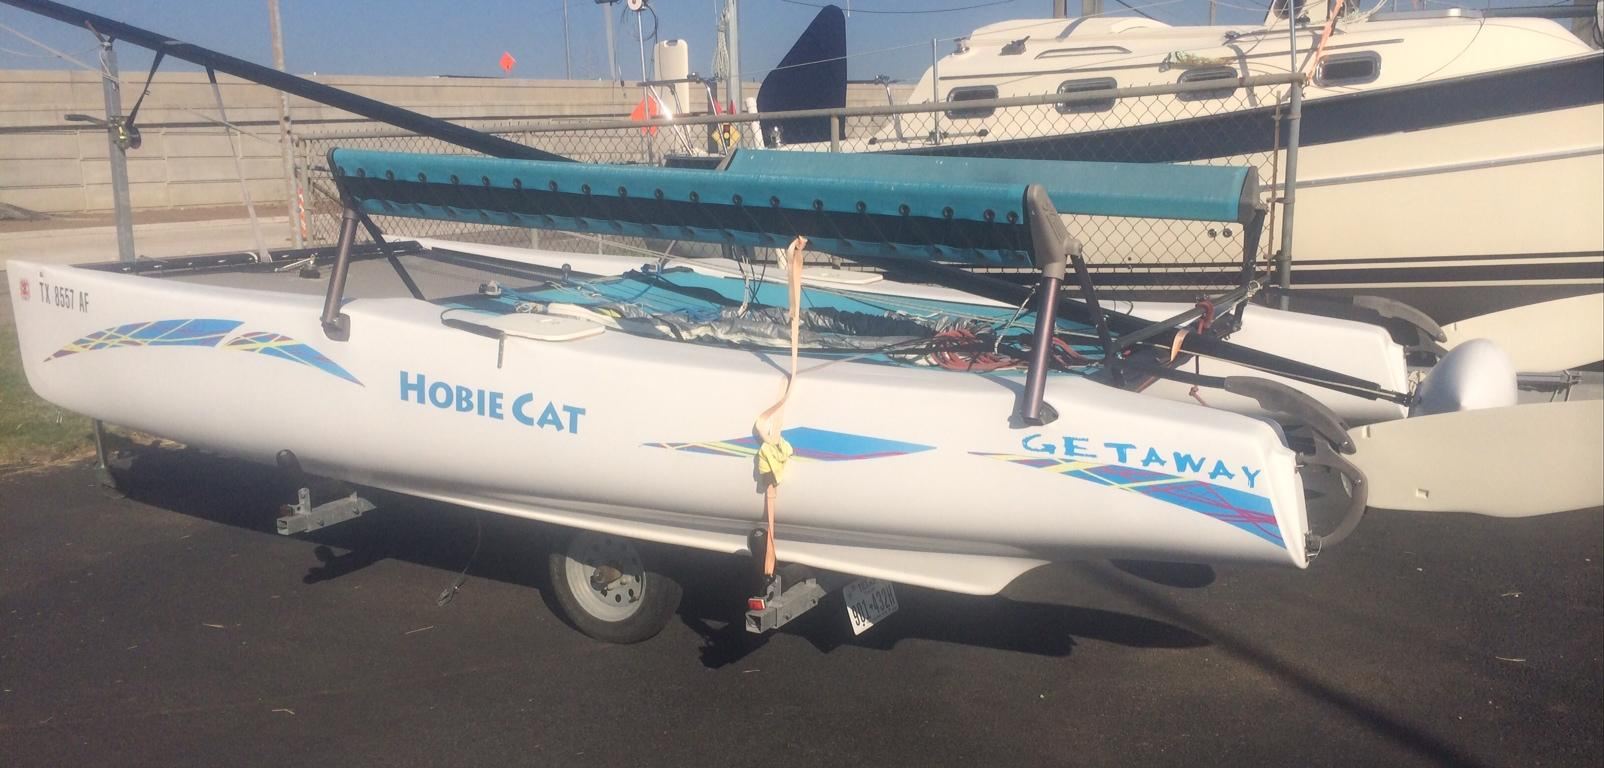 Hobie sailboats for sale by owner.